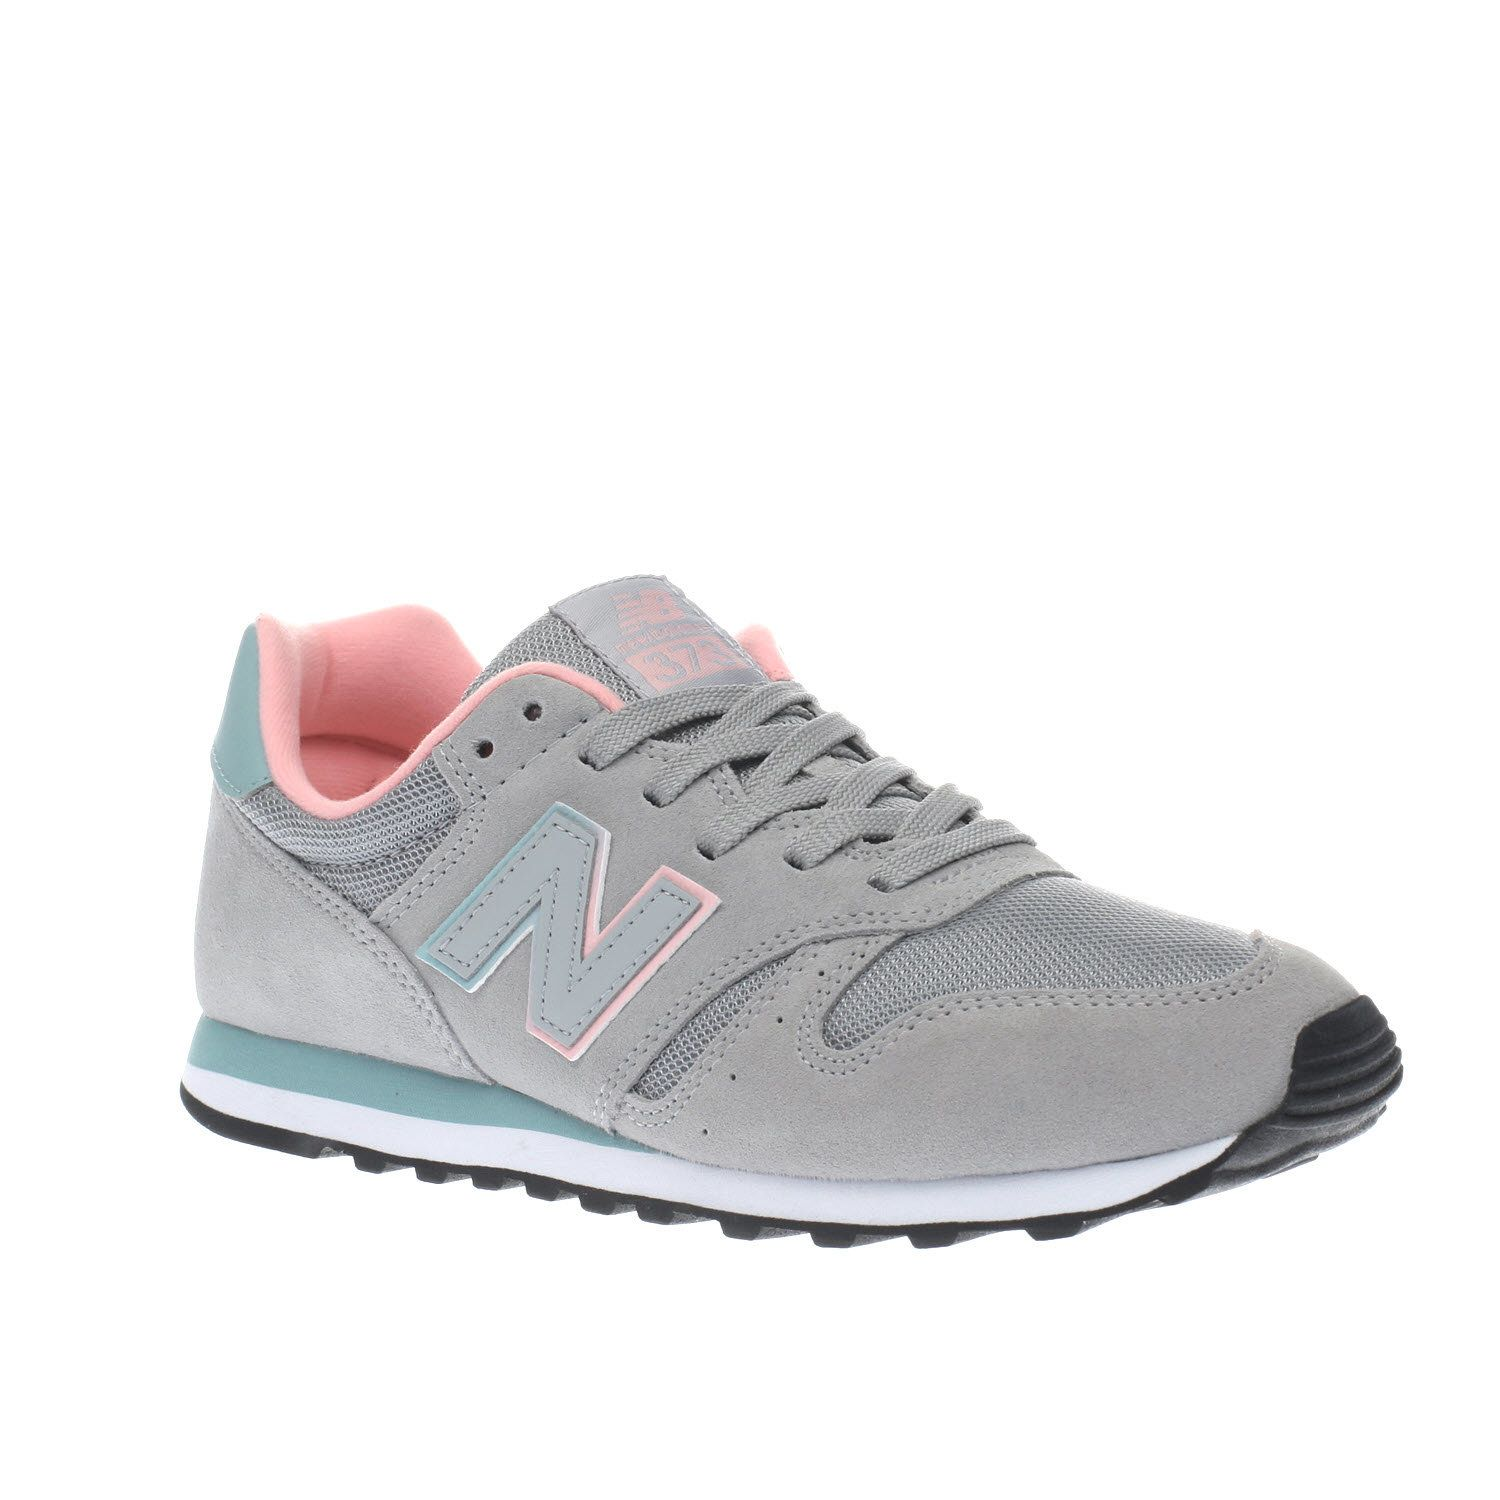 Escuela primaria Rodeo almuerzo  new balance grey and pink trainers, OFF 76%,Buy!